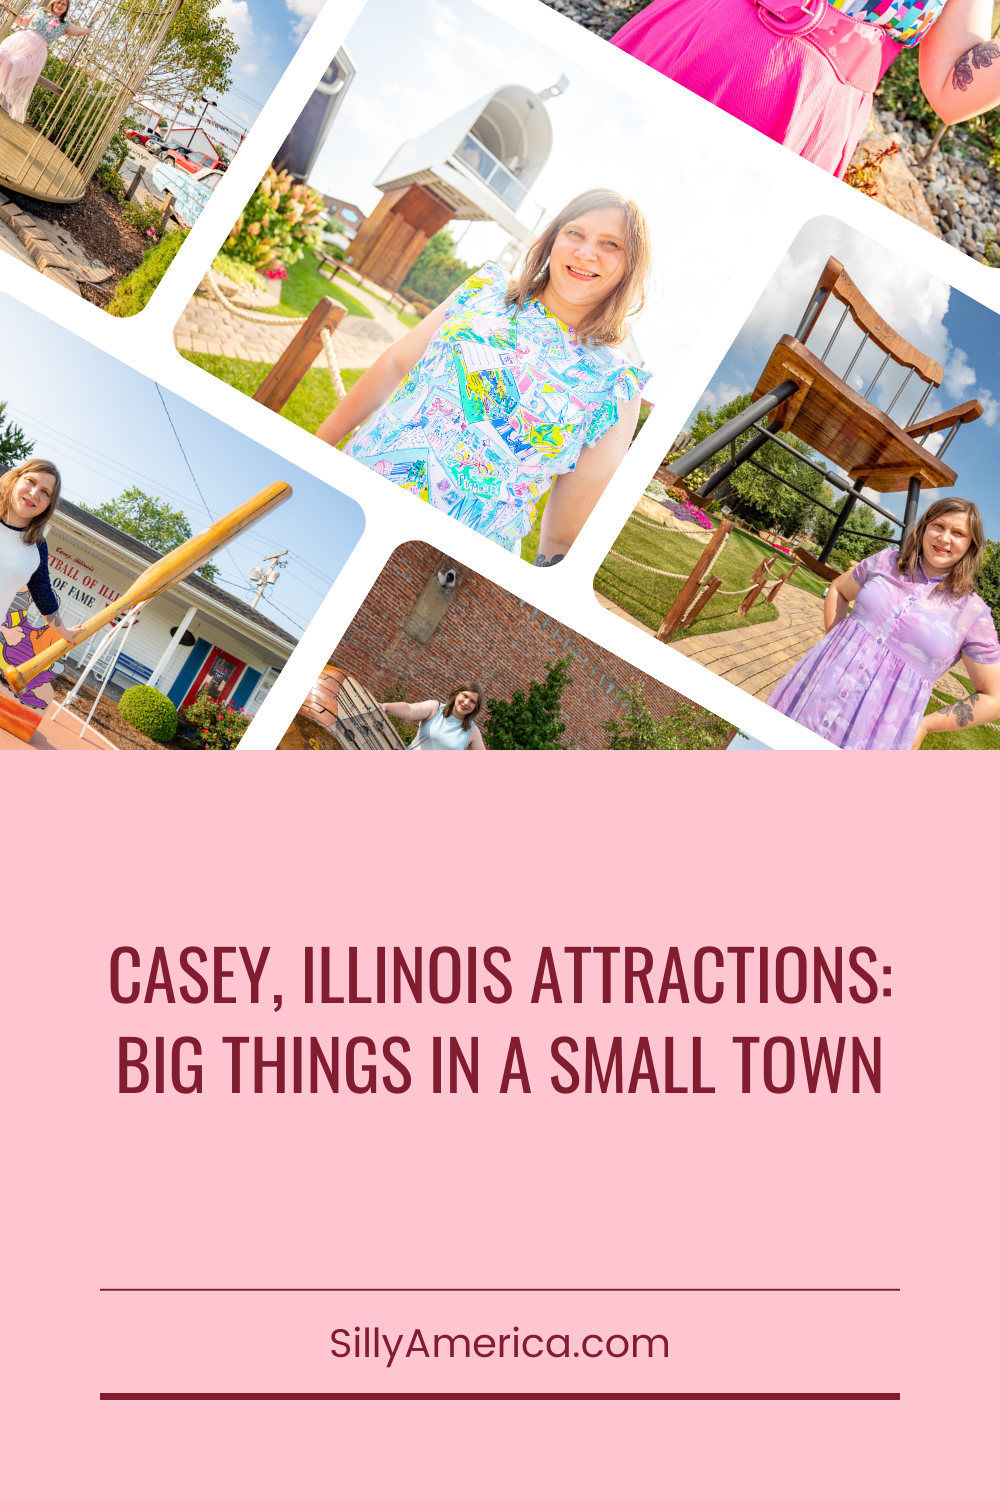 """If you always pulls over for roadside attractions you can't miss this. Casey, Illinois is home to twelve official world's largest things, houses a myriad of other oversized attractions, and takes their slogan of """"Big Things in a Small Town"""" seriously. You can't miss these Casey Illinois attractions.  #IllinoisRoadsideAttractions #IllinoisRoadsideAttraction #RoadsideAttractions #RoadsideAttraction #RoadTrip #IllinoisRoadTrip #IllinoisWeekendGetaways #IllinoisWithKids #IllinoisRoadTripTravel"""